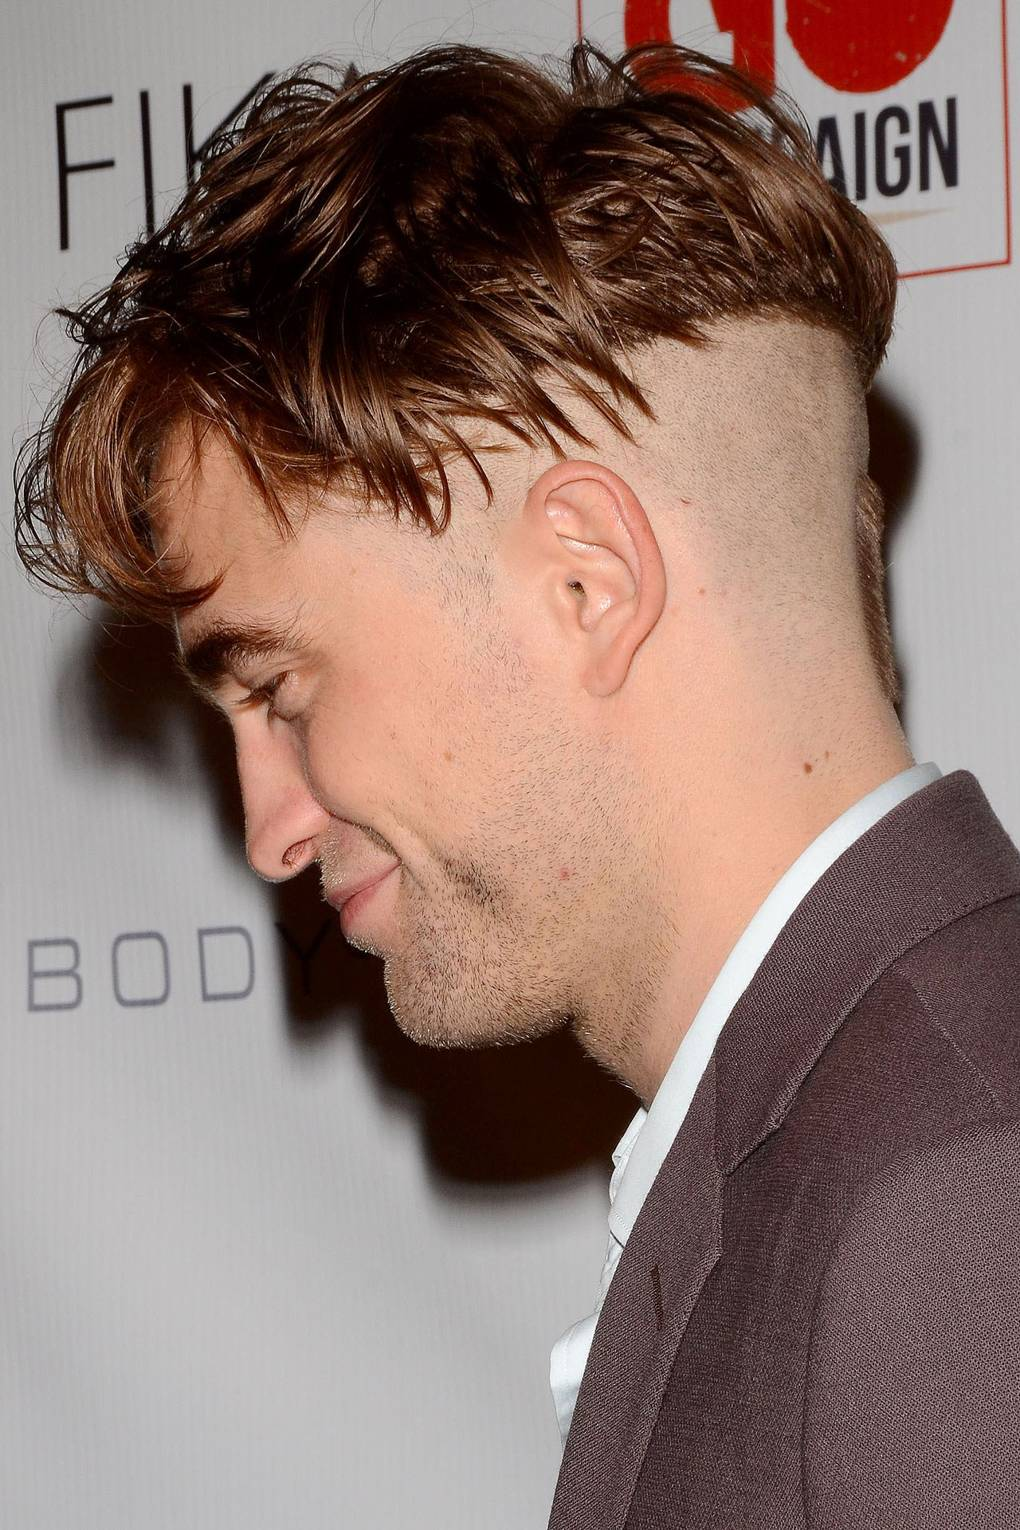 Robert Pattinson Undercut Bad Hairstyle Pictures Glamour Uk